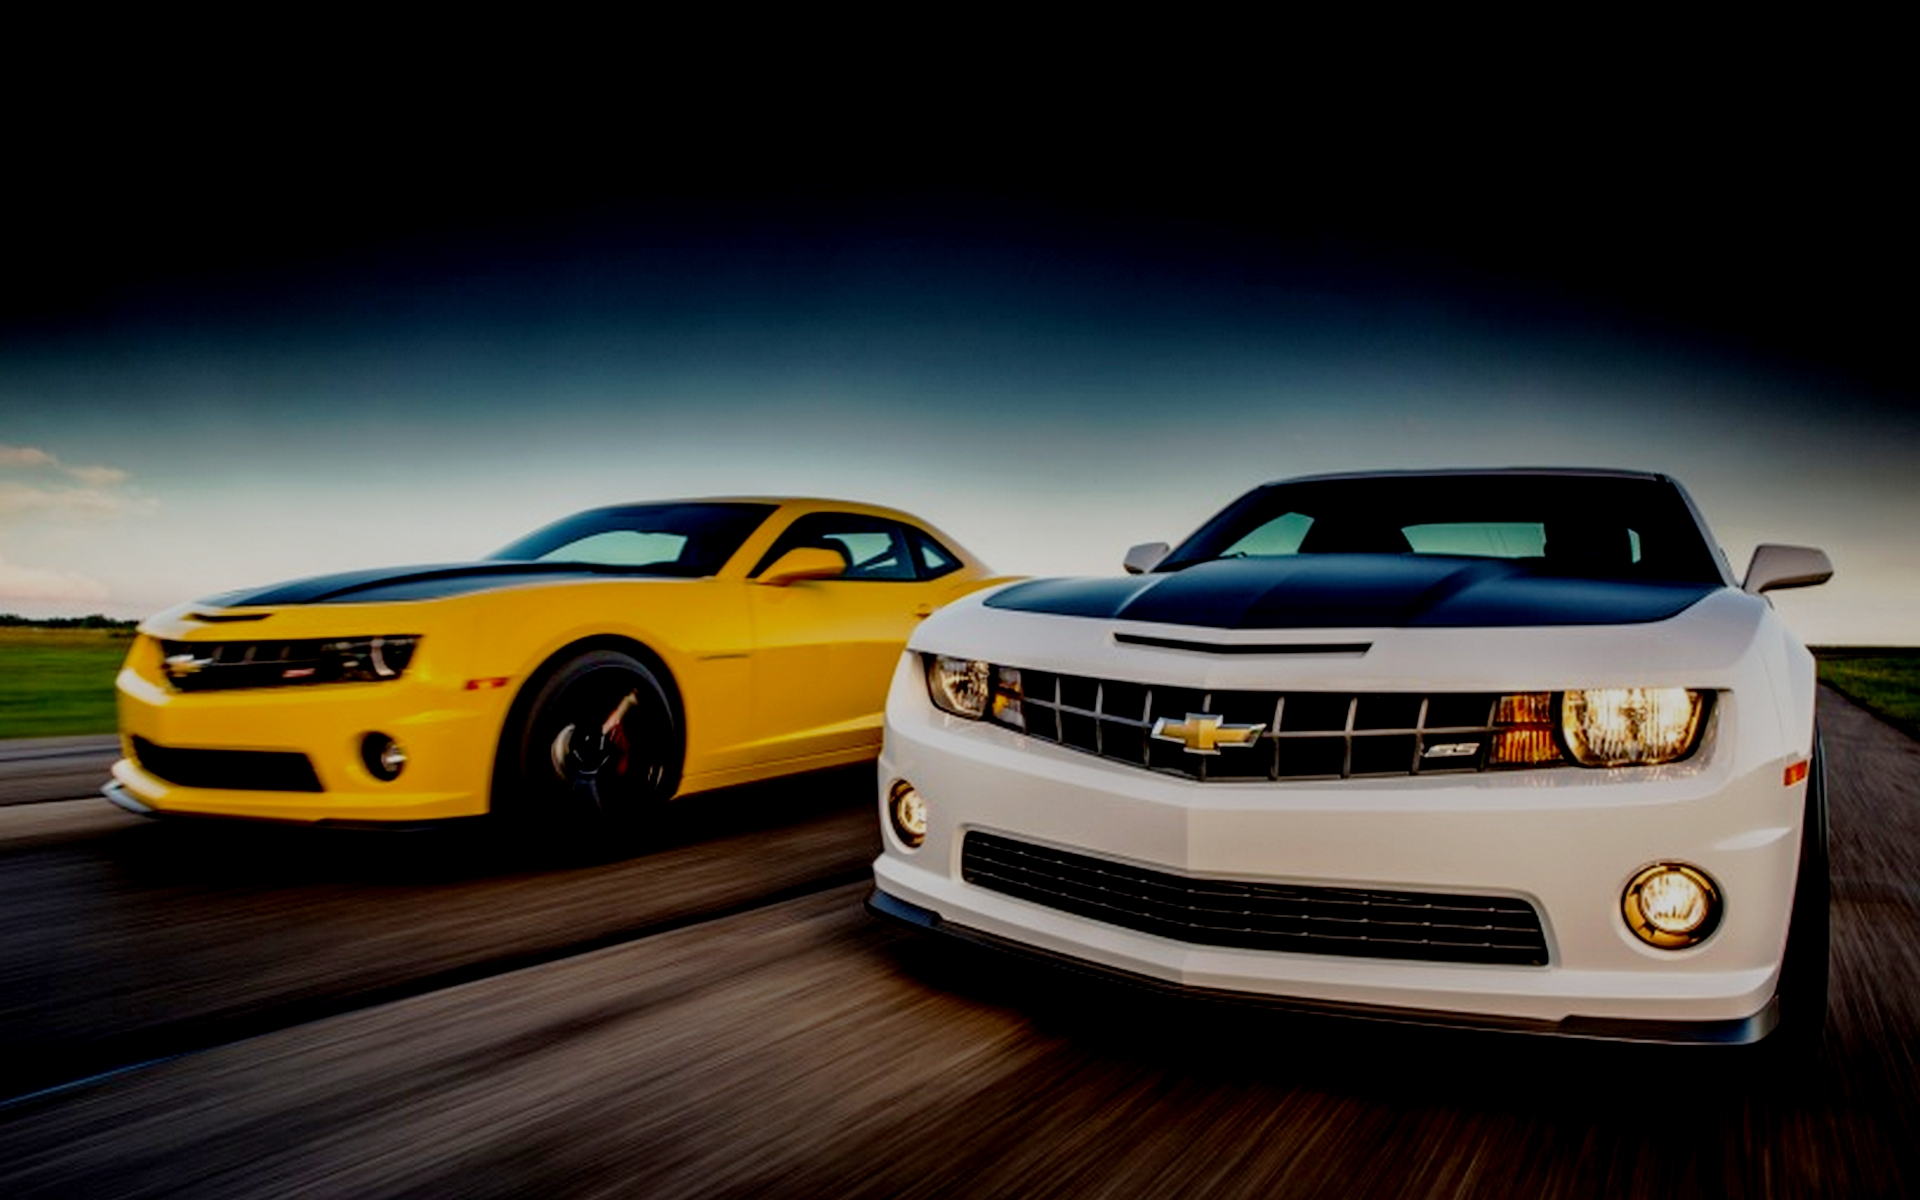 2015 Camaro Hd Background Wallpaper 22 HD Wallpapers 1920x1200